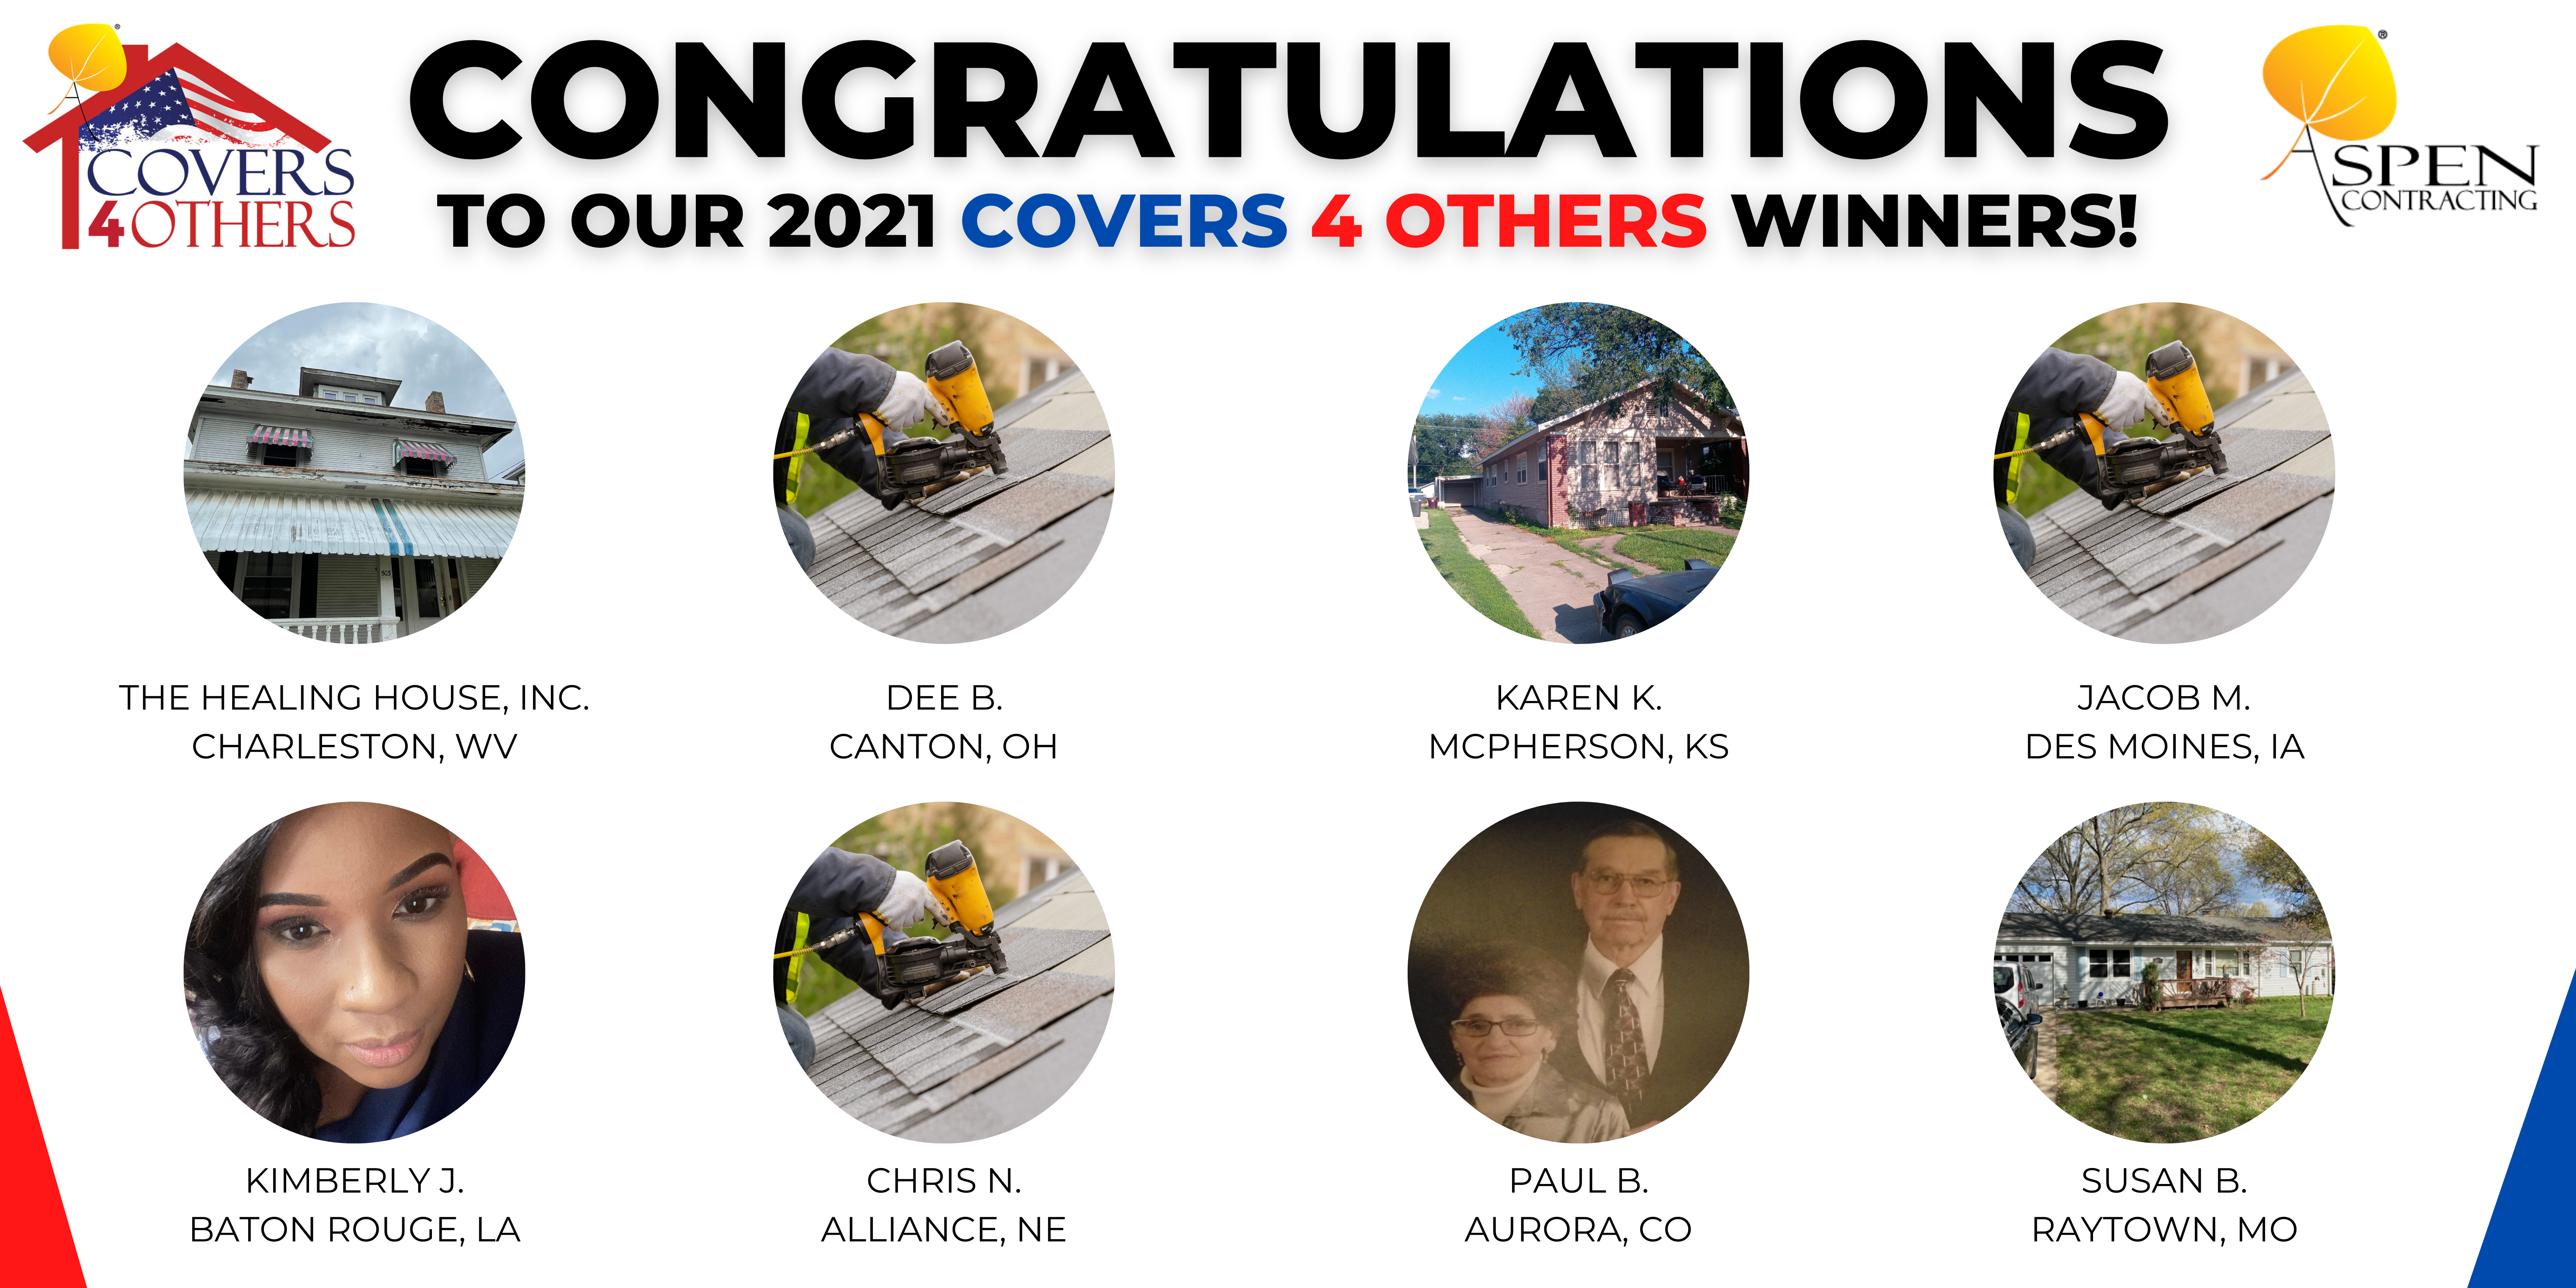 2021 Covers 4 others Free Roof Winners